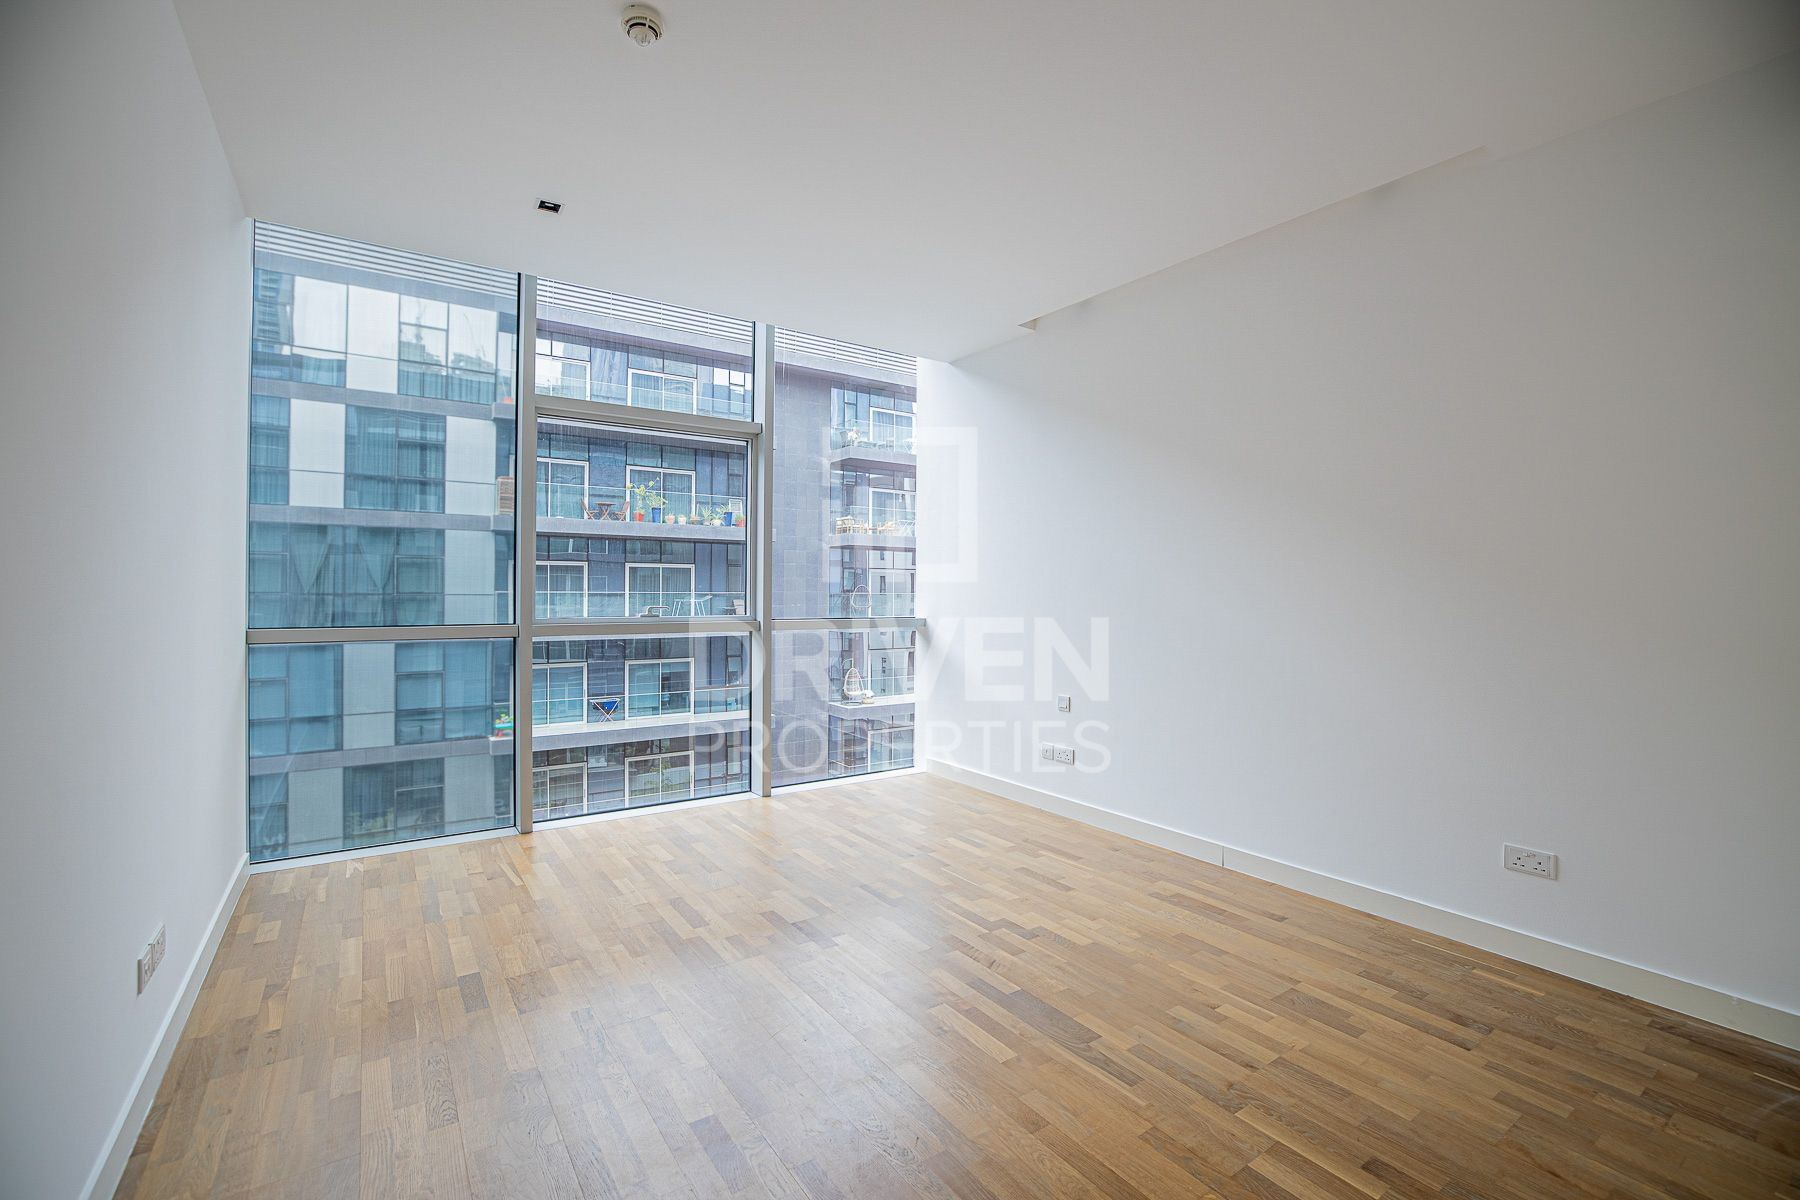 Cheapest and Lovely Apt | Courtyard View